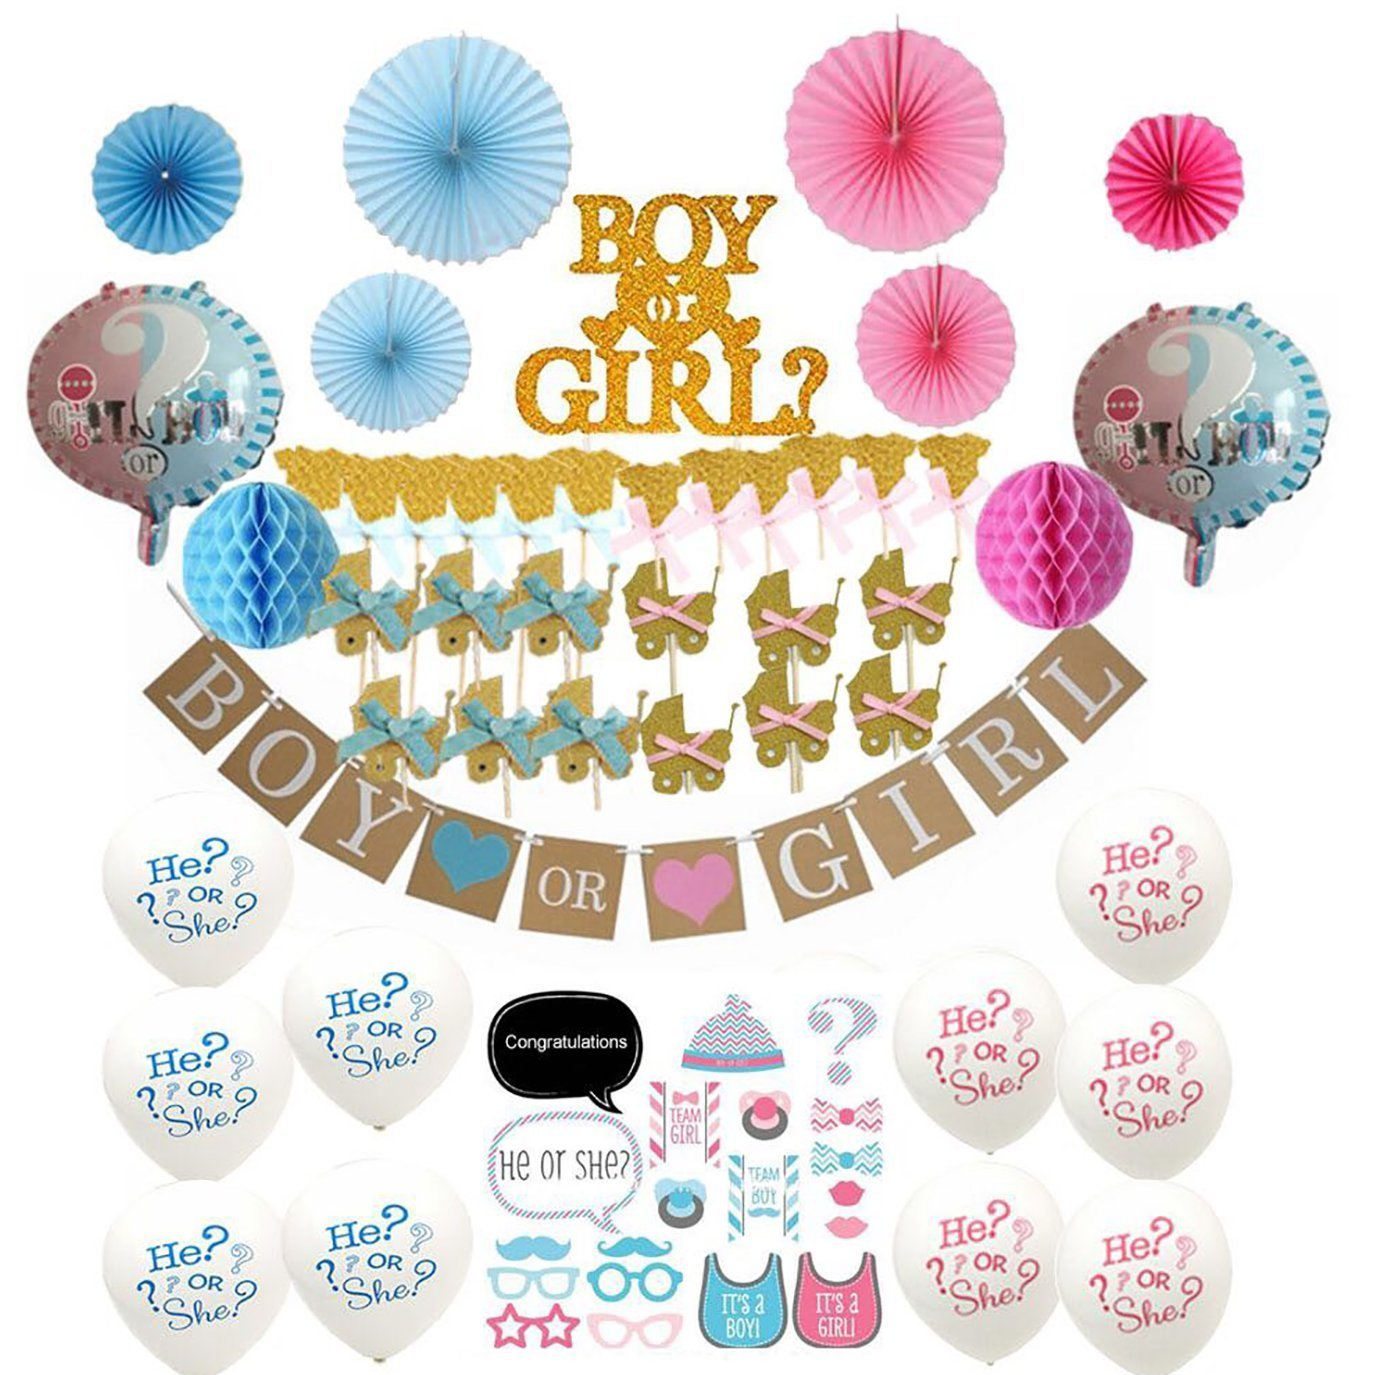 66-Pc Deluxe Baby Reveal Party Supplies - Gender Reveal Decorations, 20pc Photo Booth Props, Cake Set - Banner + Pink & Blue Fans & Honeycomb Balls + Cake & Cupcake Toppers + Balloons